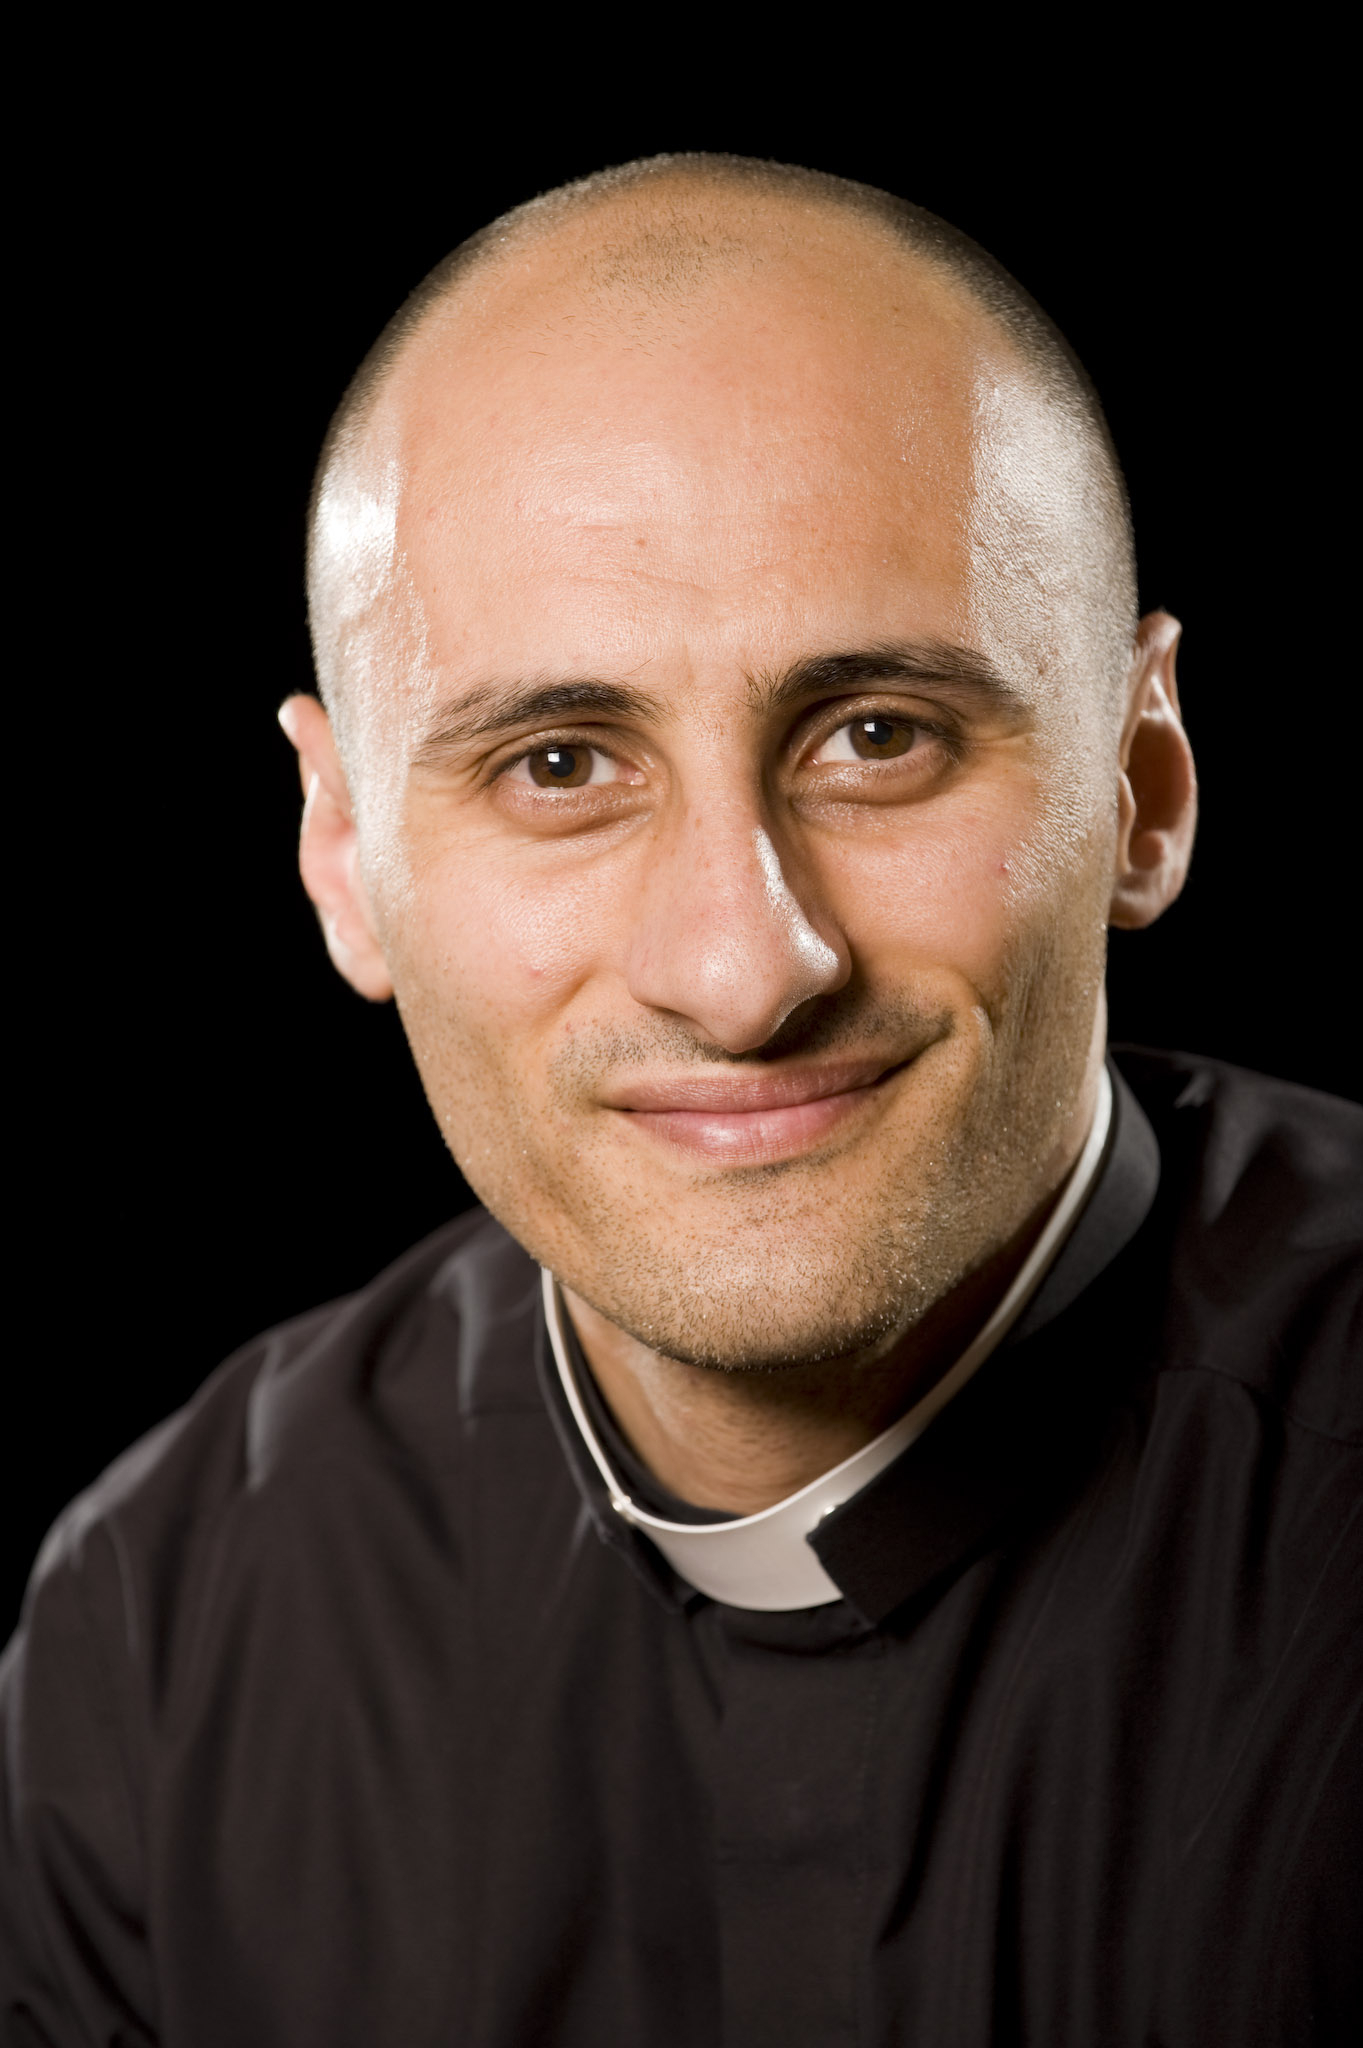 The Rev. Sari Ateek, Rector